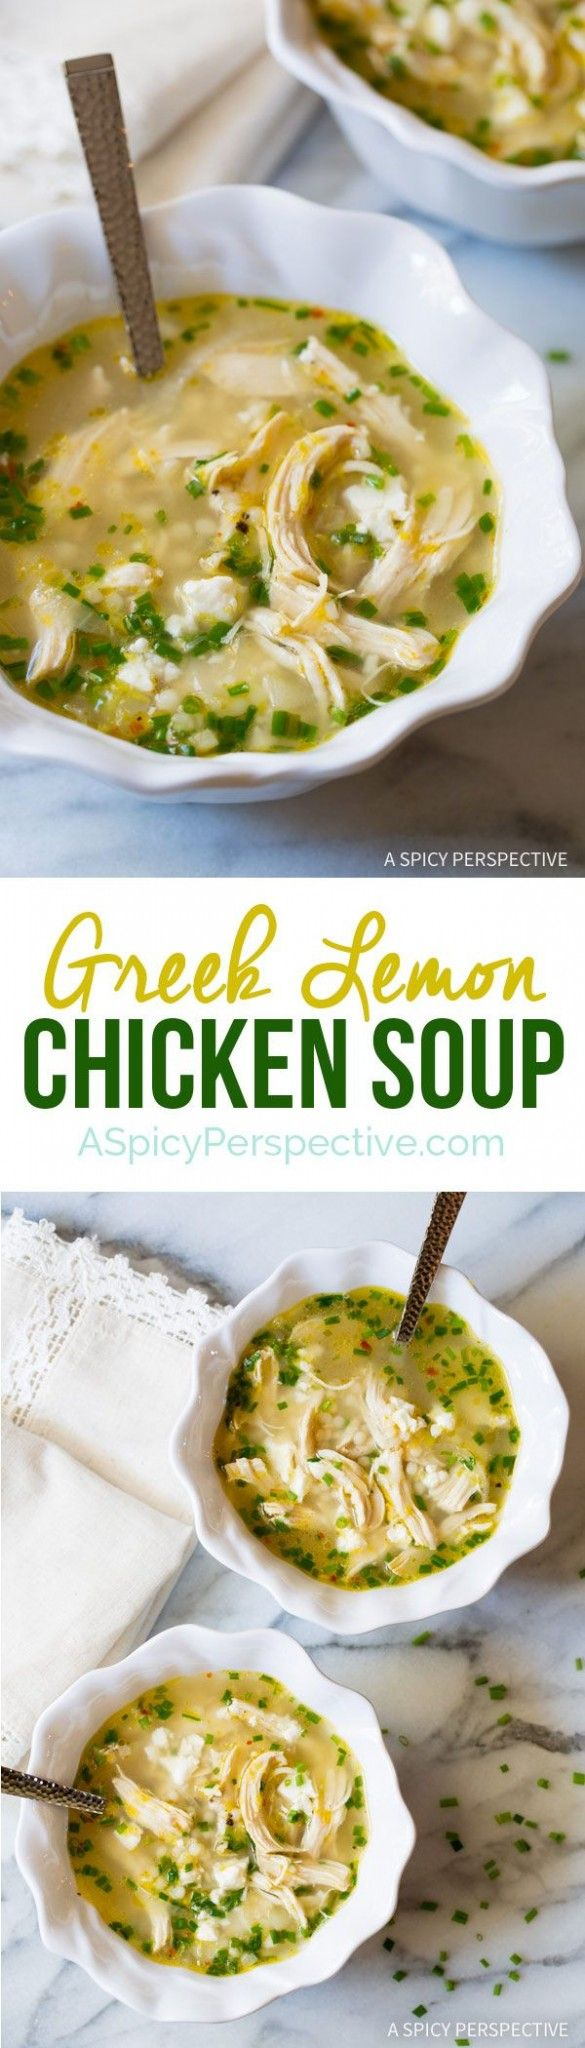 Traditional Greek Lemon Chicken Soup - A Spicy Perspective